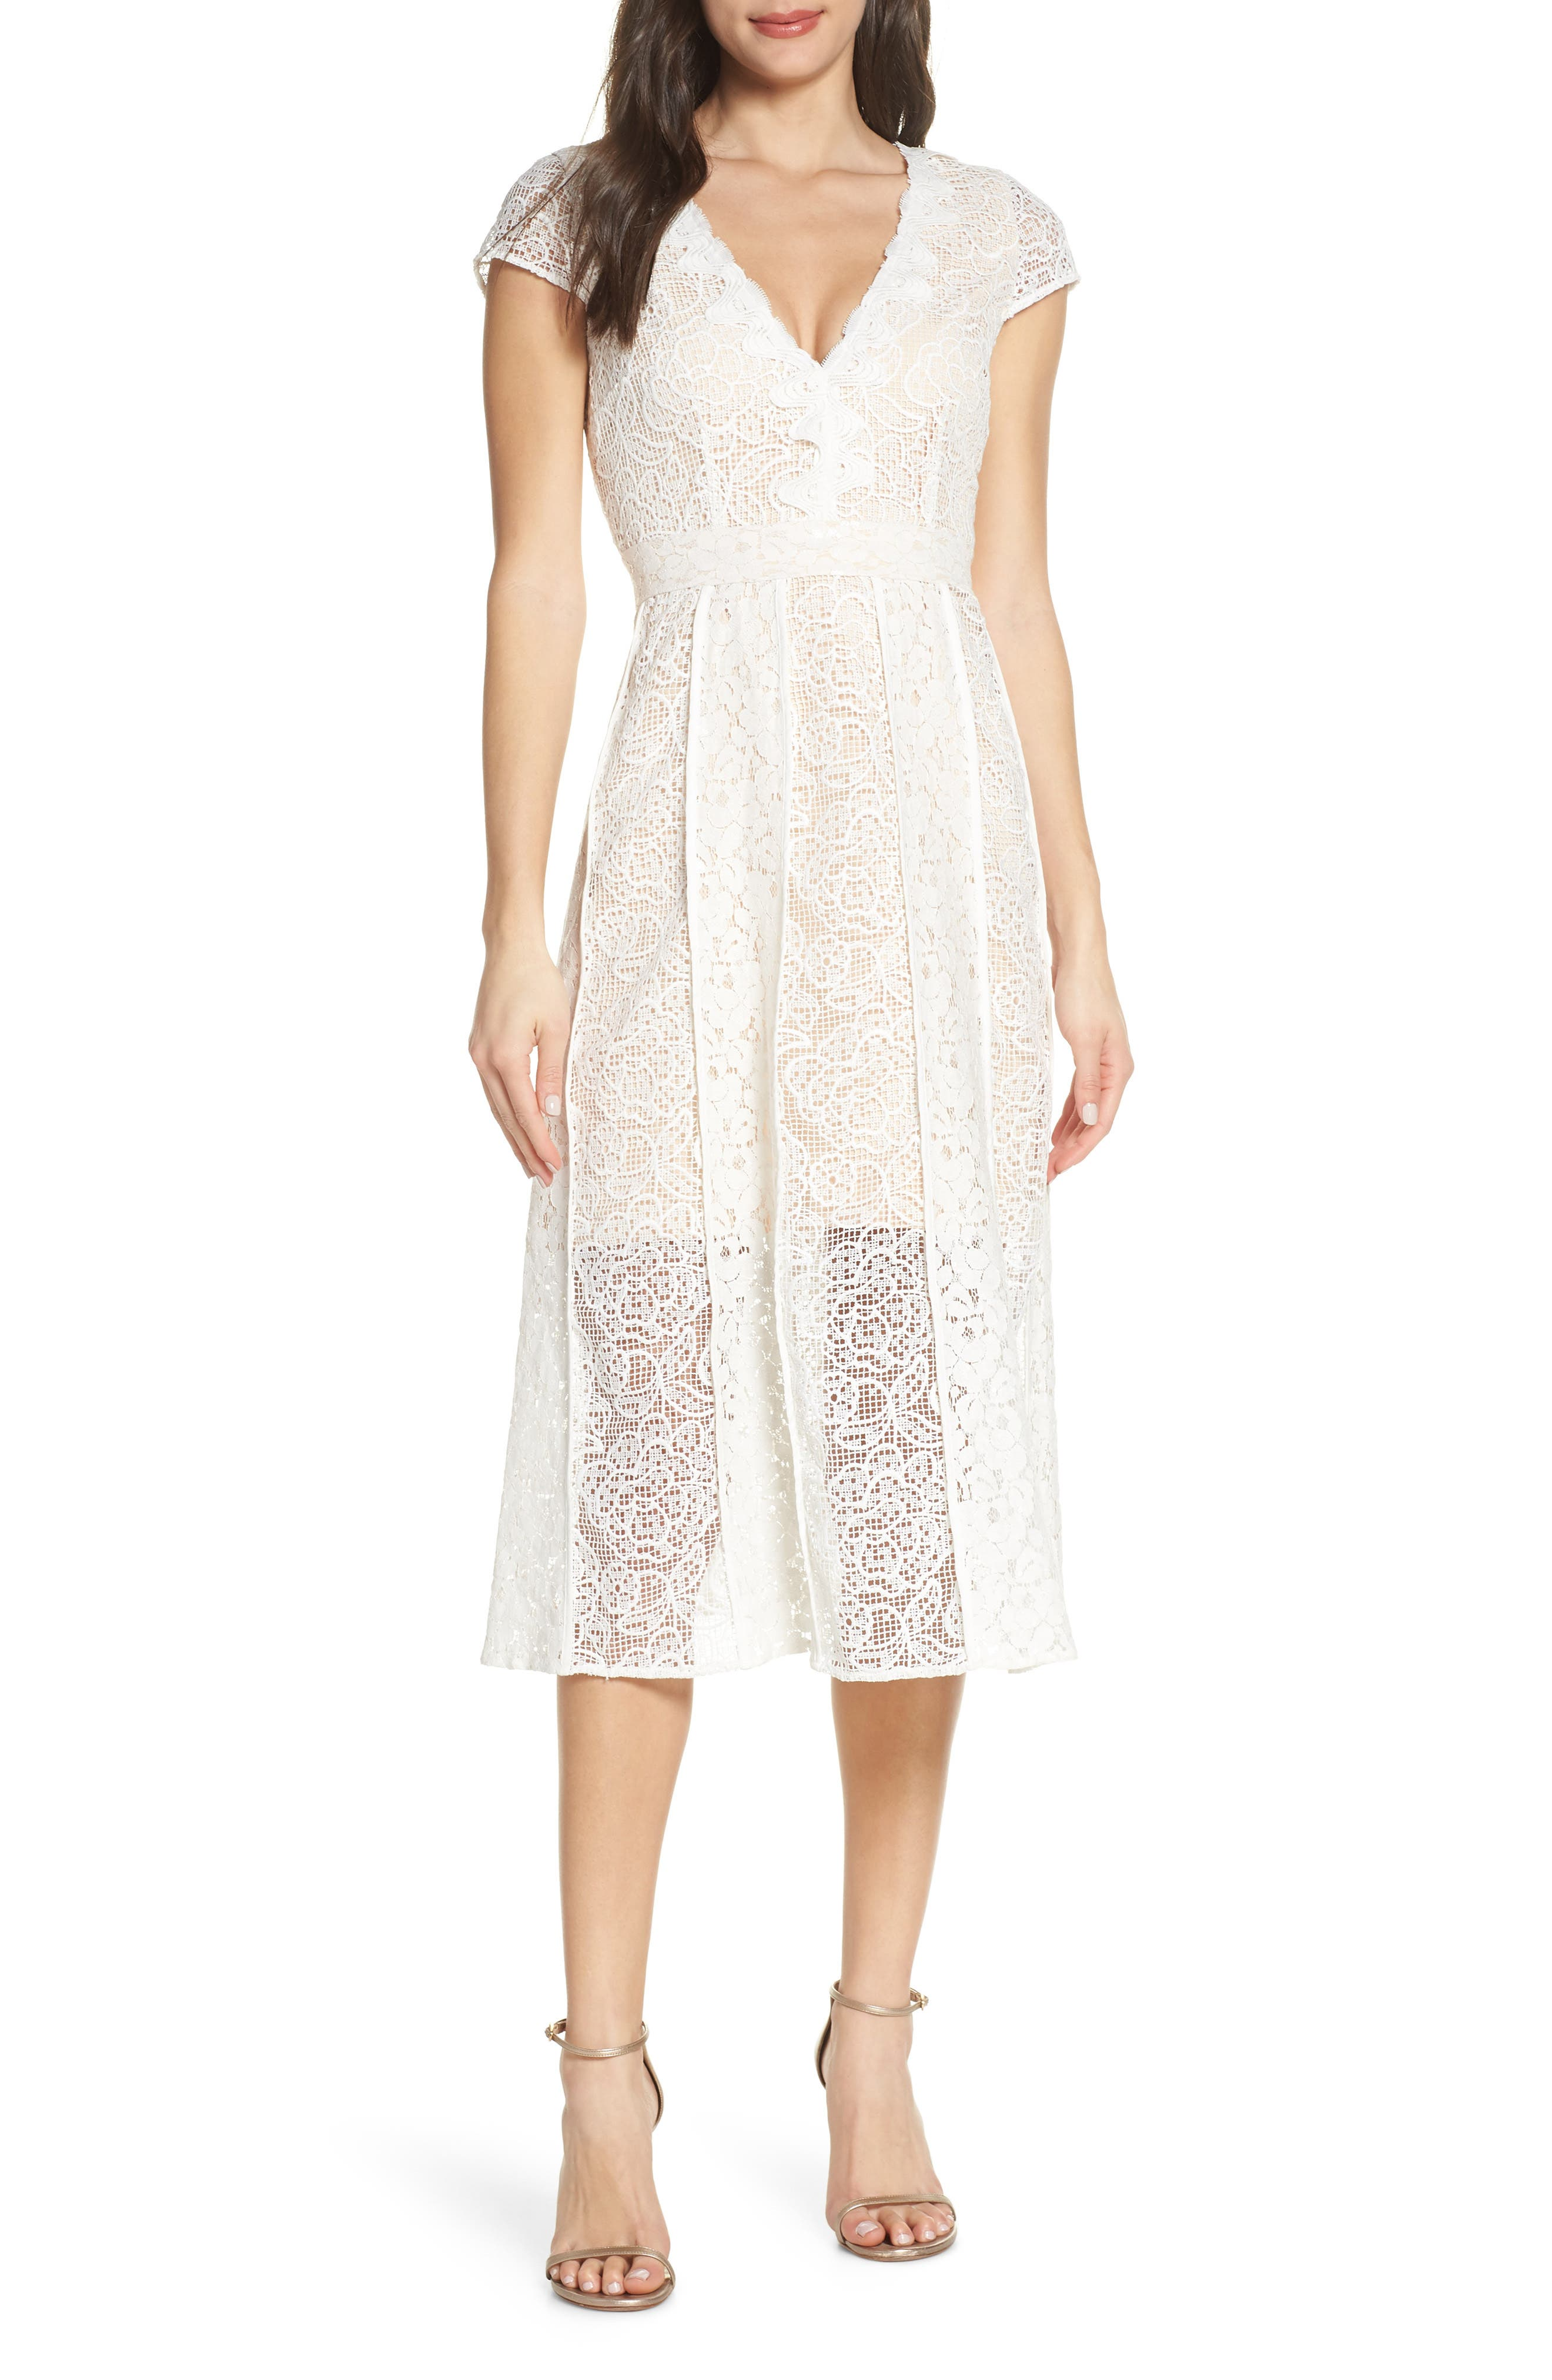 Foxiedox Edith Floral Lace Cocktail Dress, Ivory